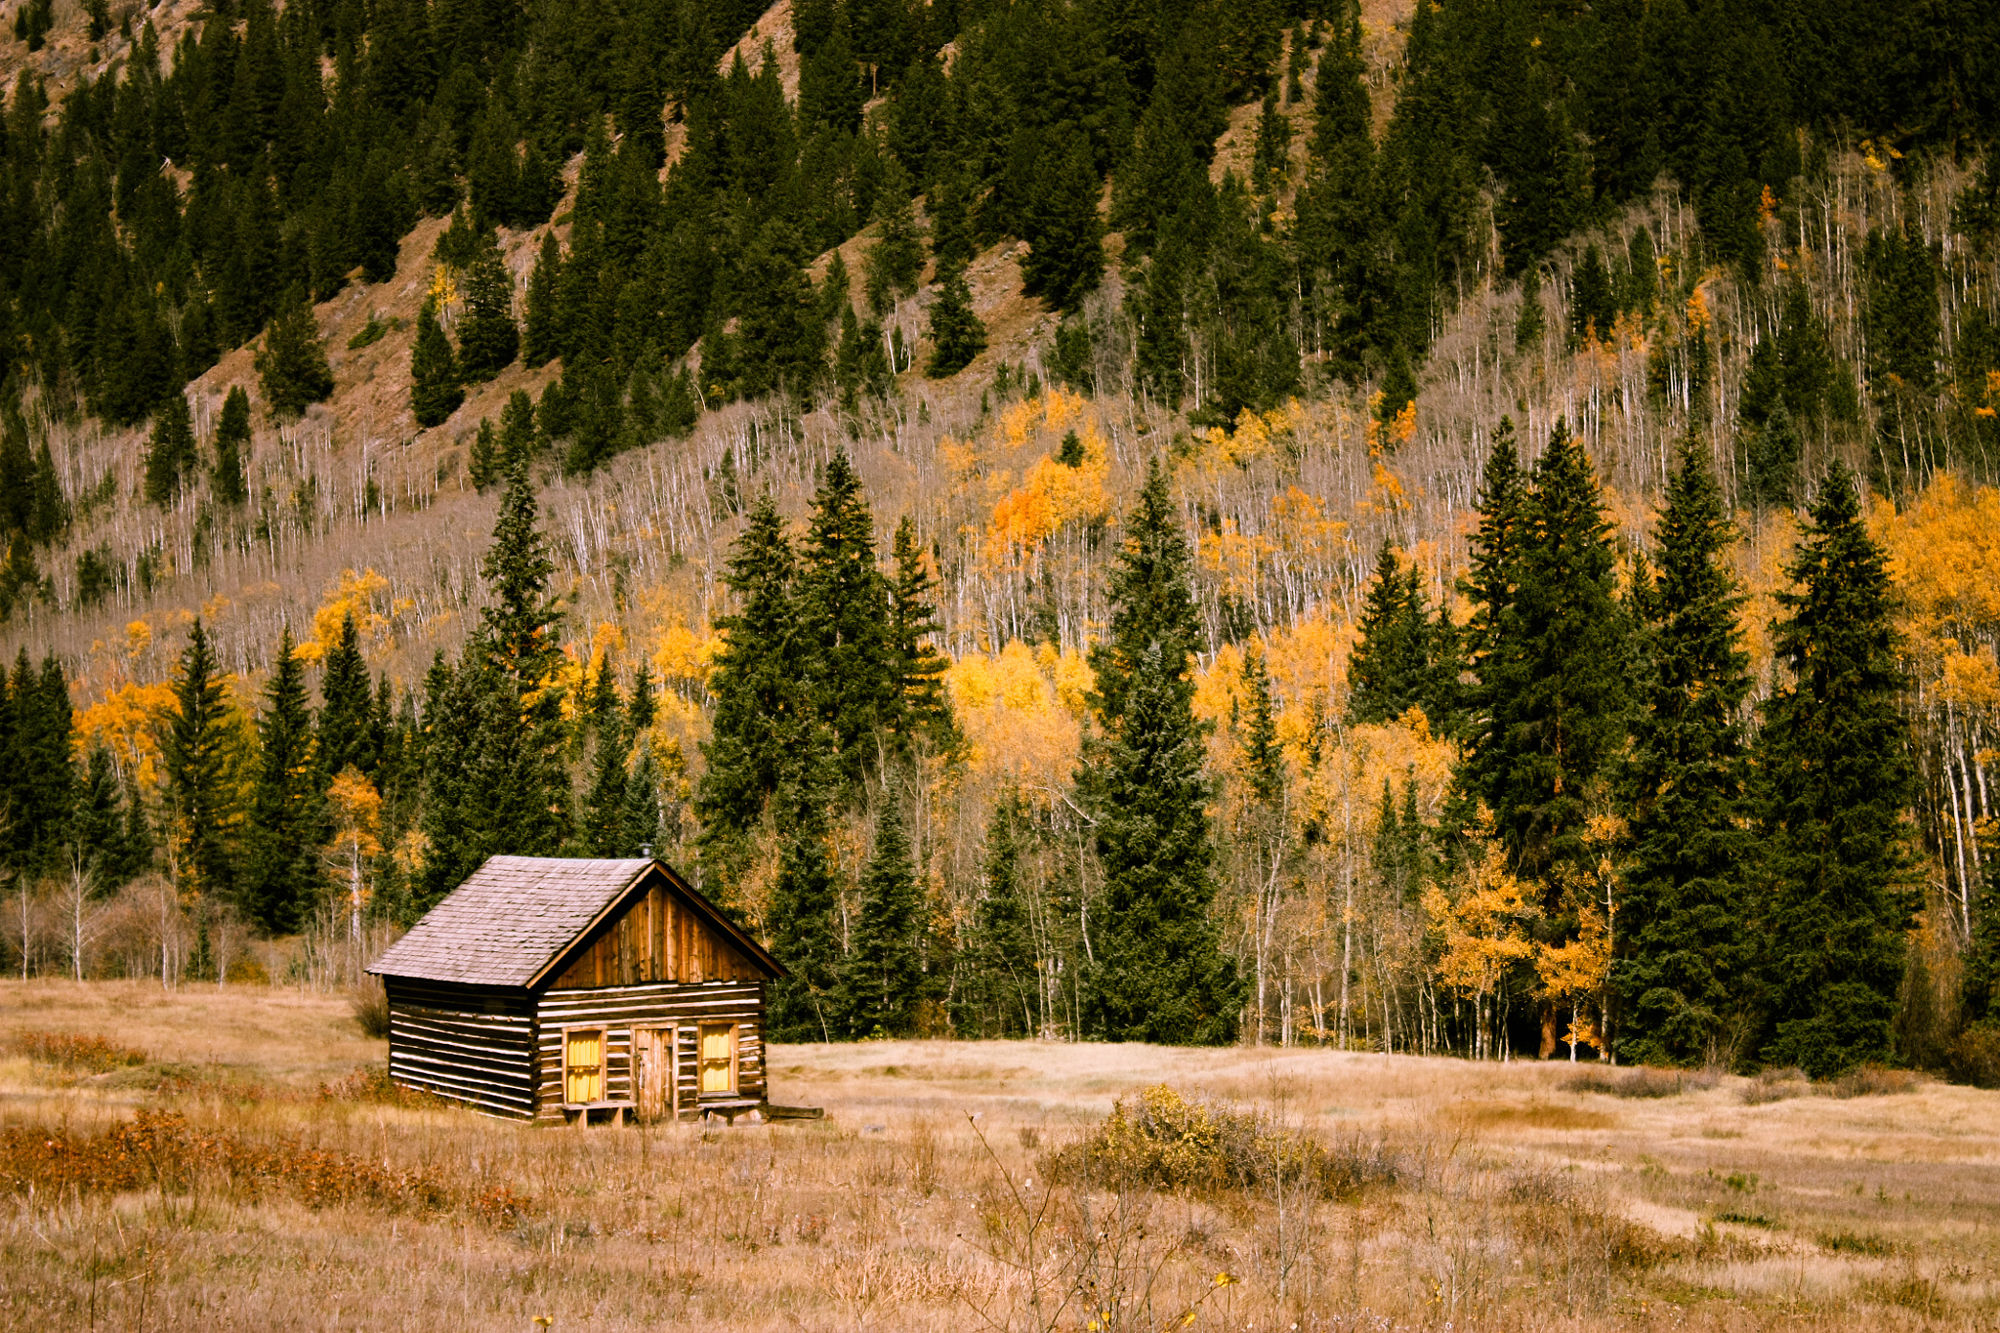 Best Cabin Rental Destinations in the US